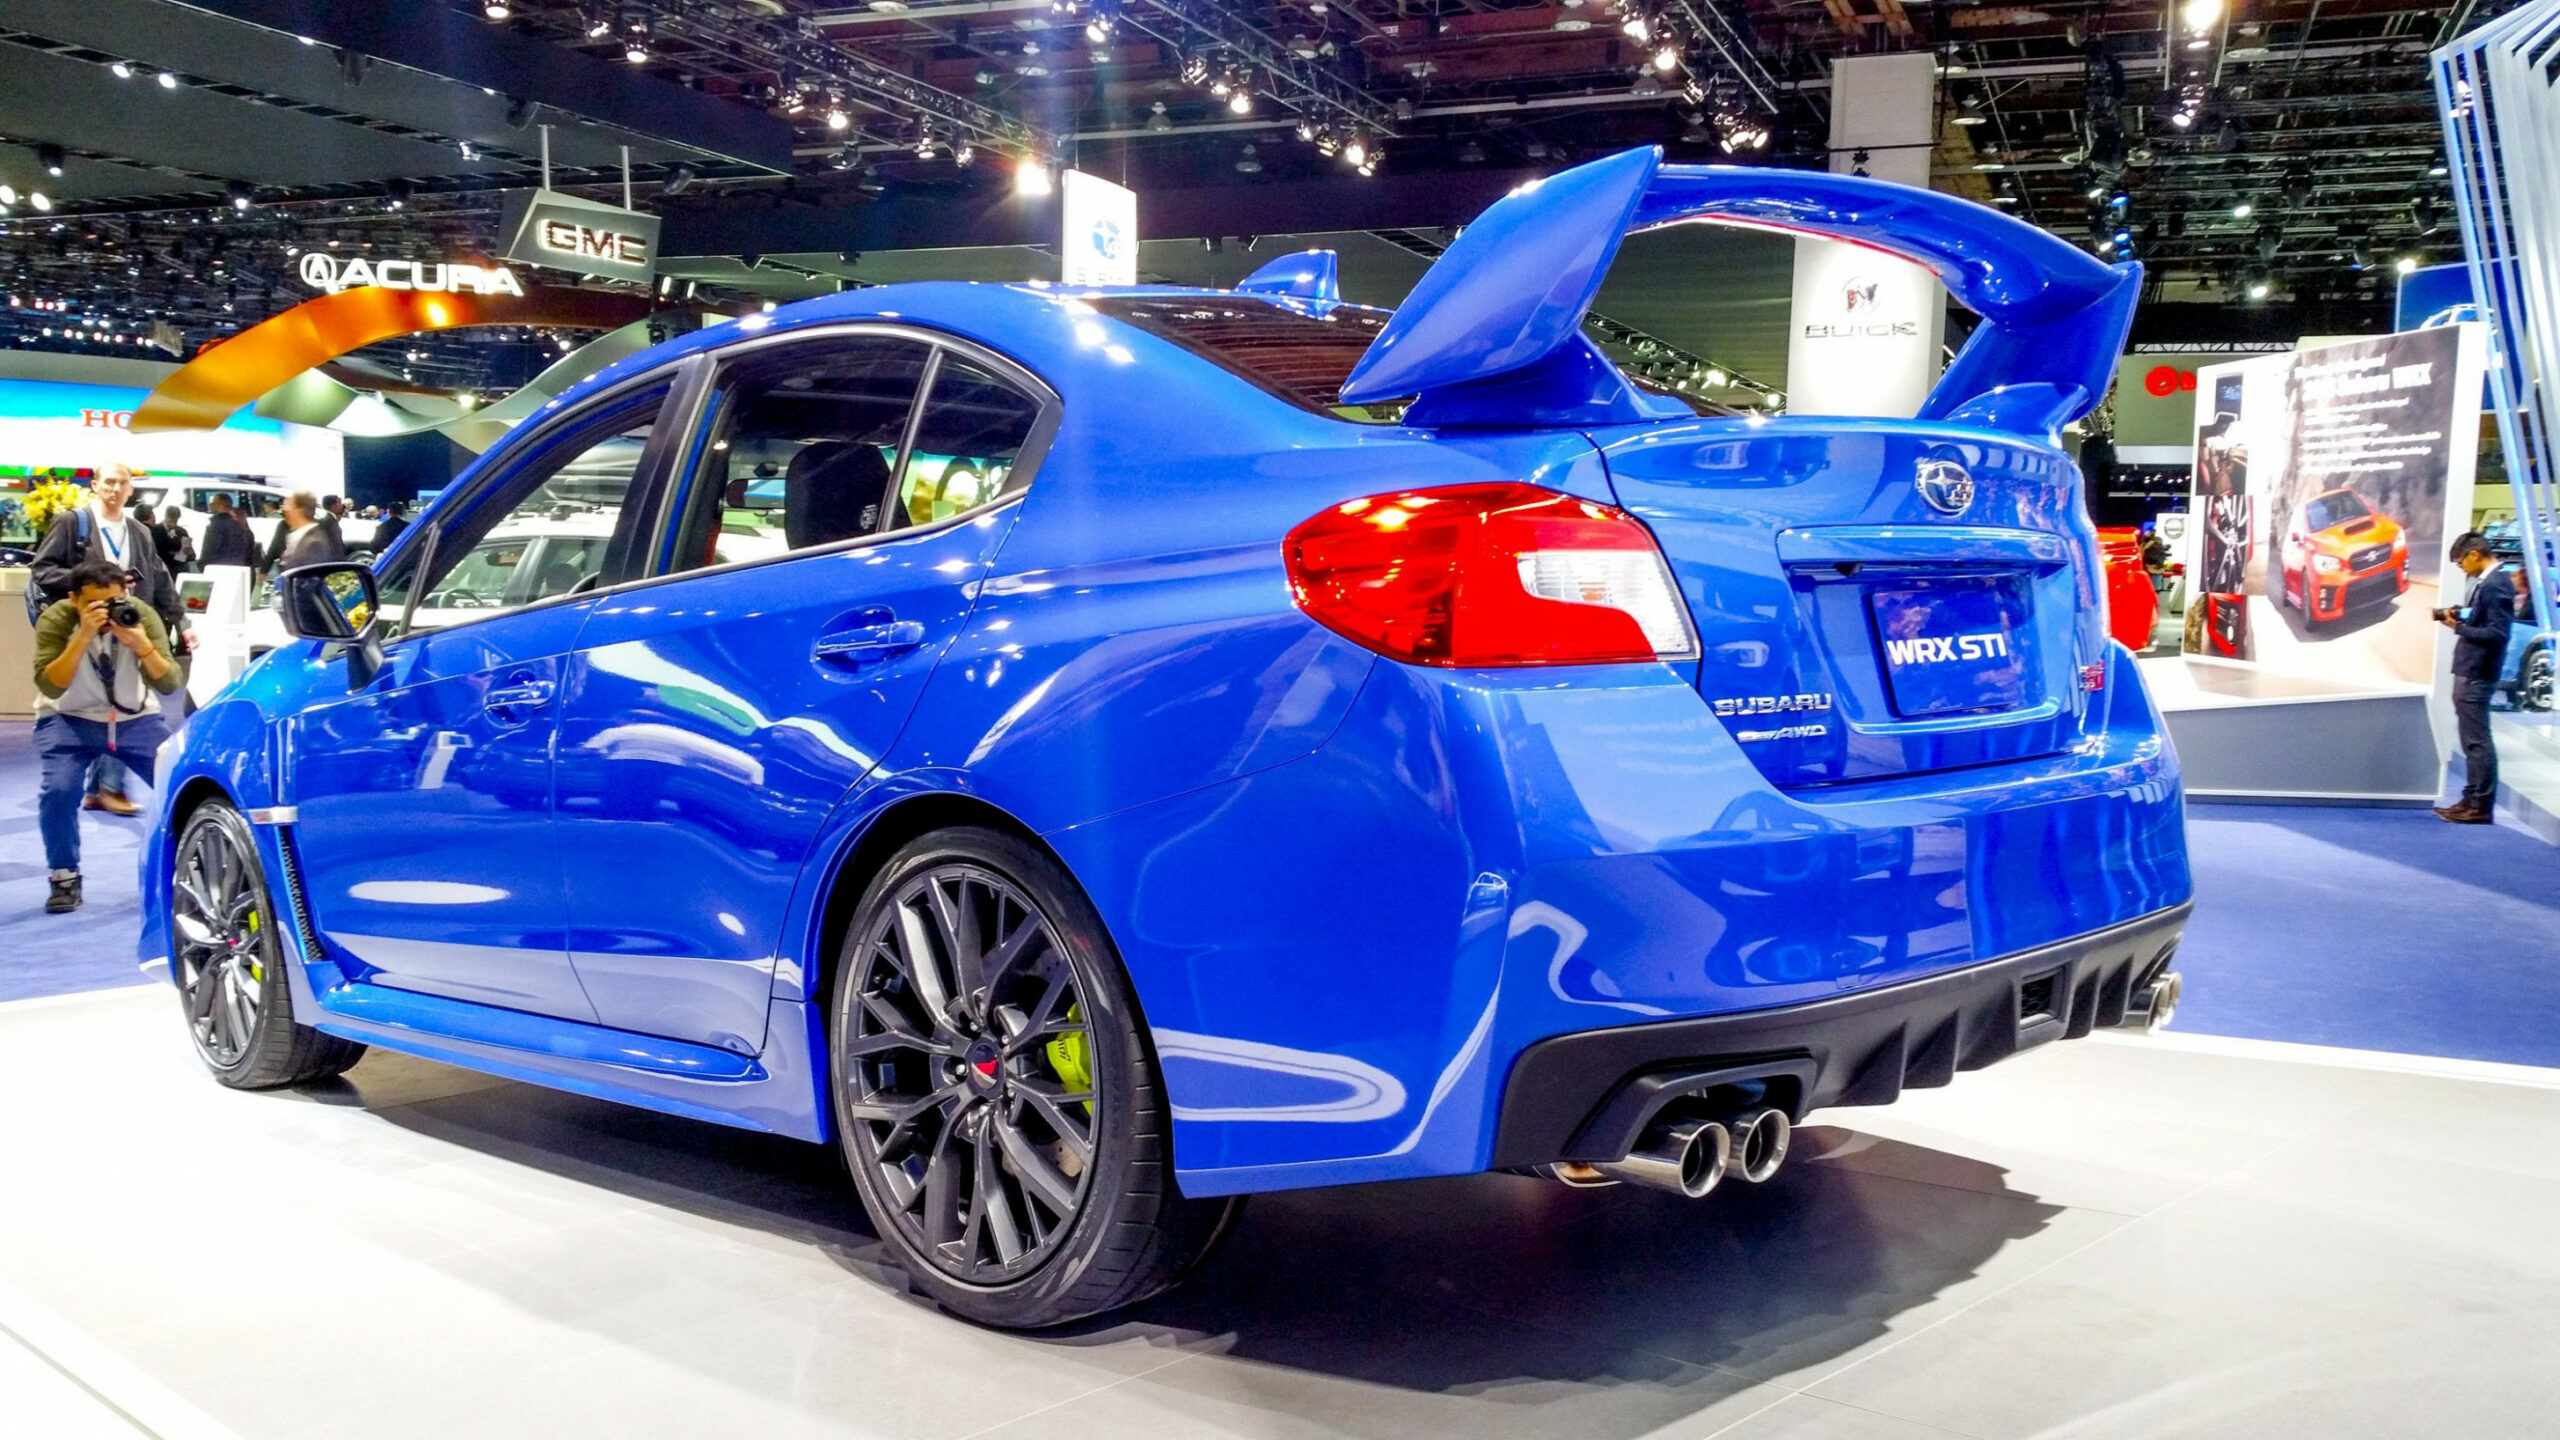 11 subaru wrx 11-611 Release Date, Price and Review 6511*11 - 11 ...